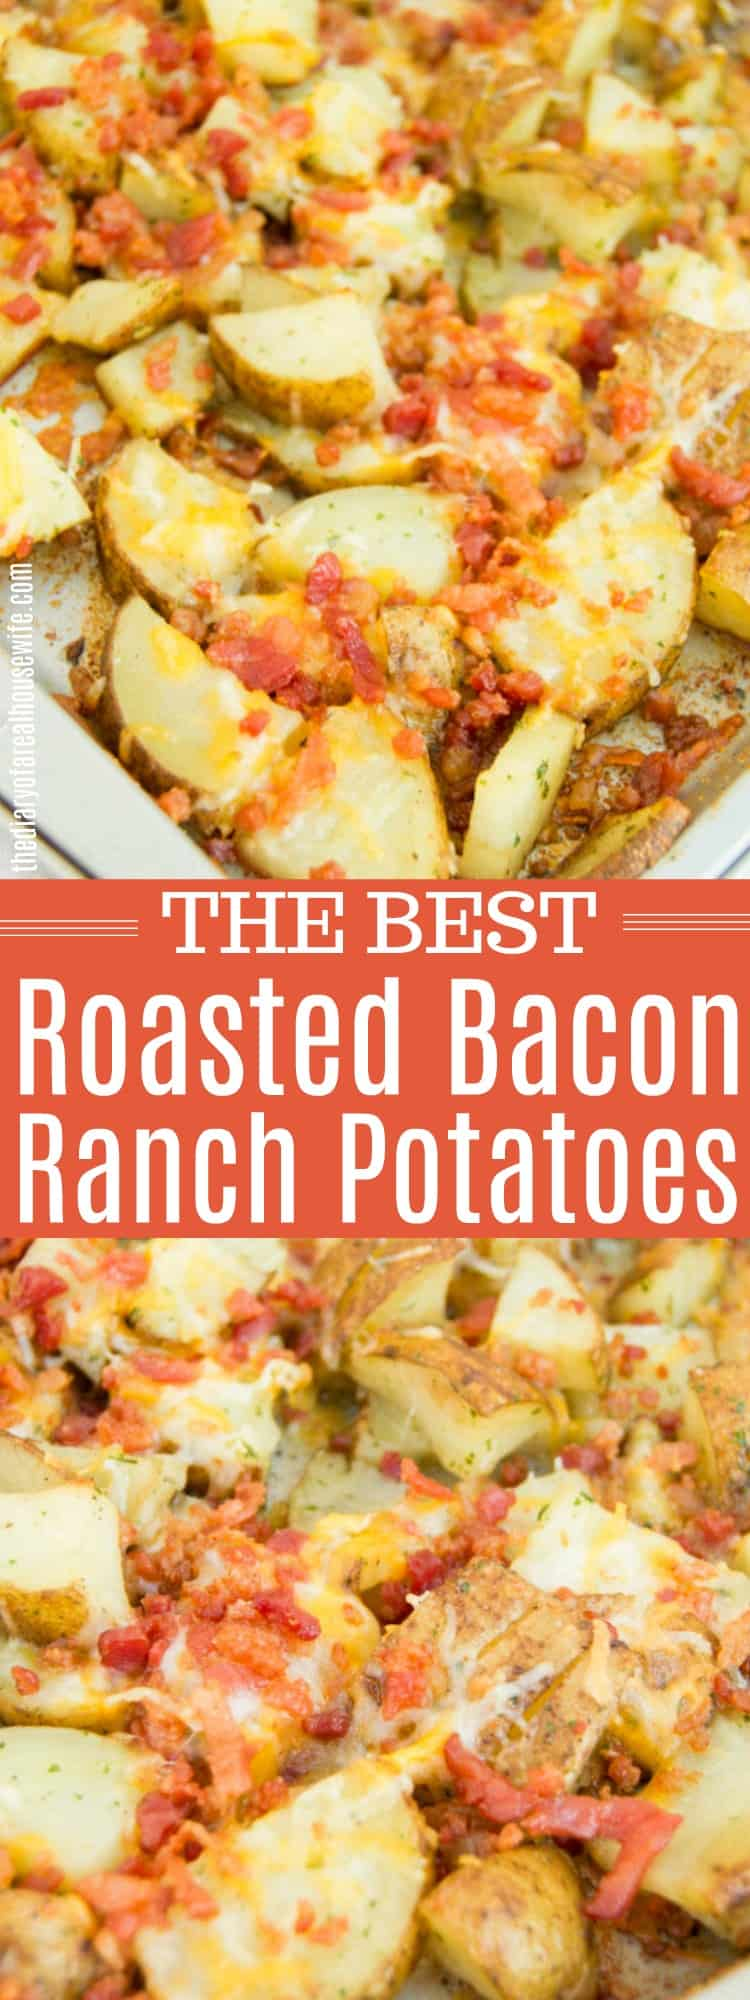 Roasted Bacon Ranch Potatoes